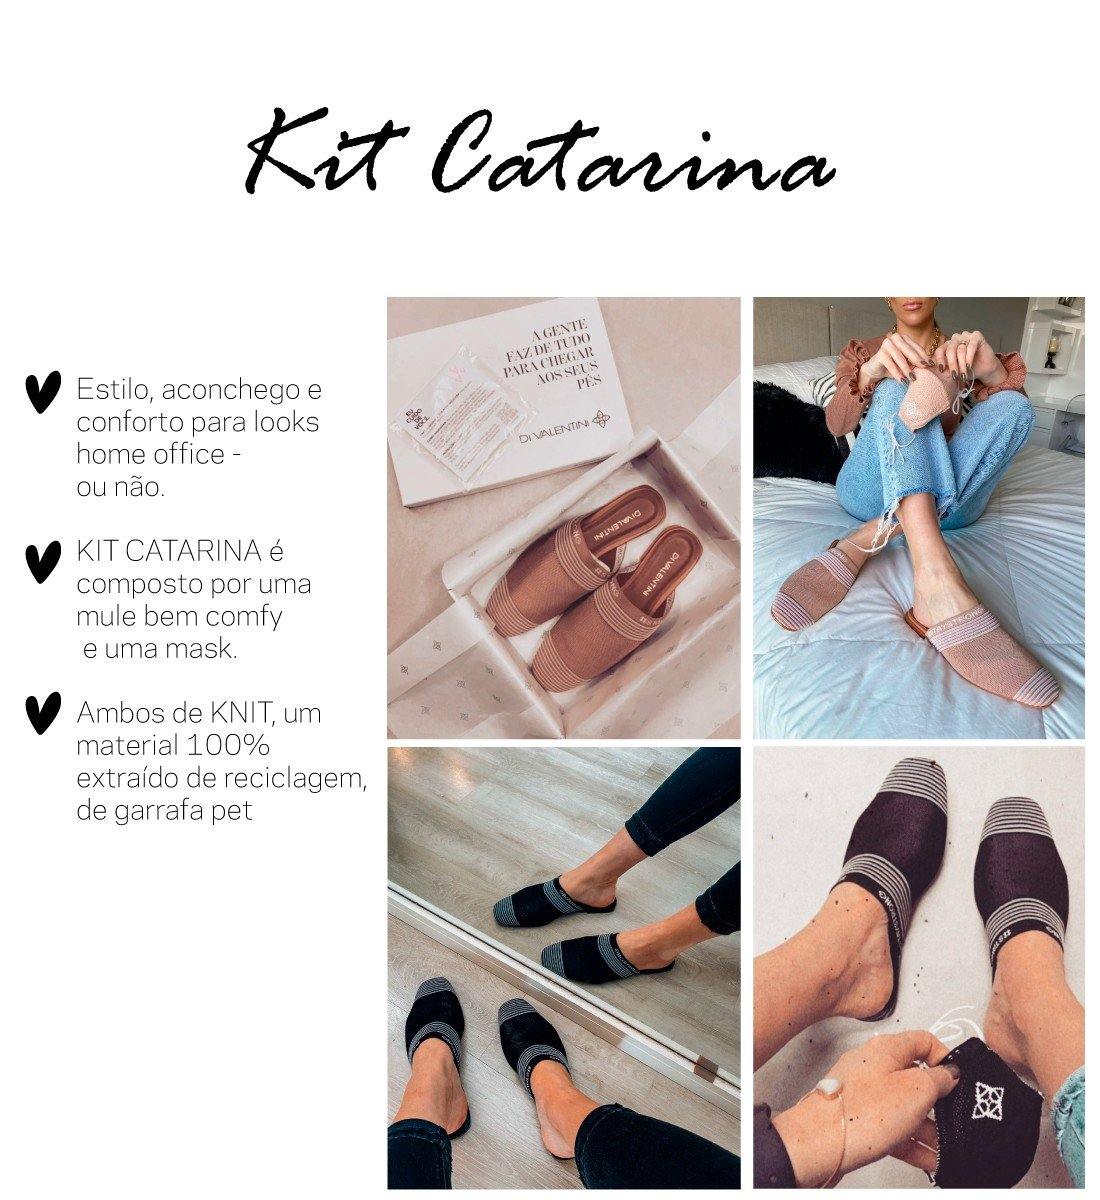 kit catarina